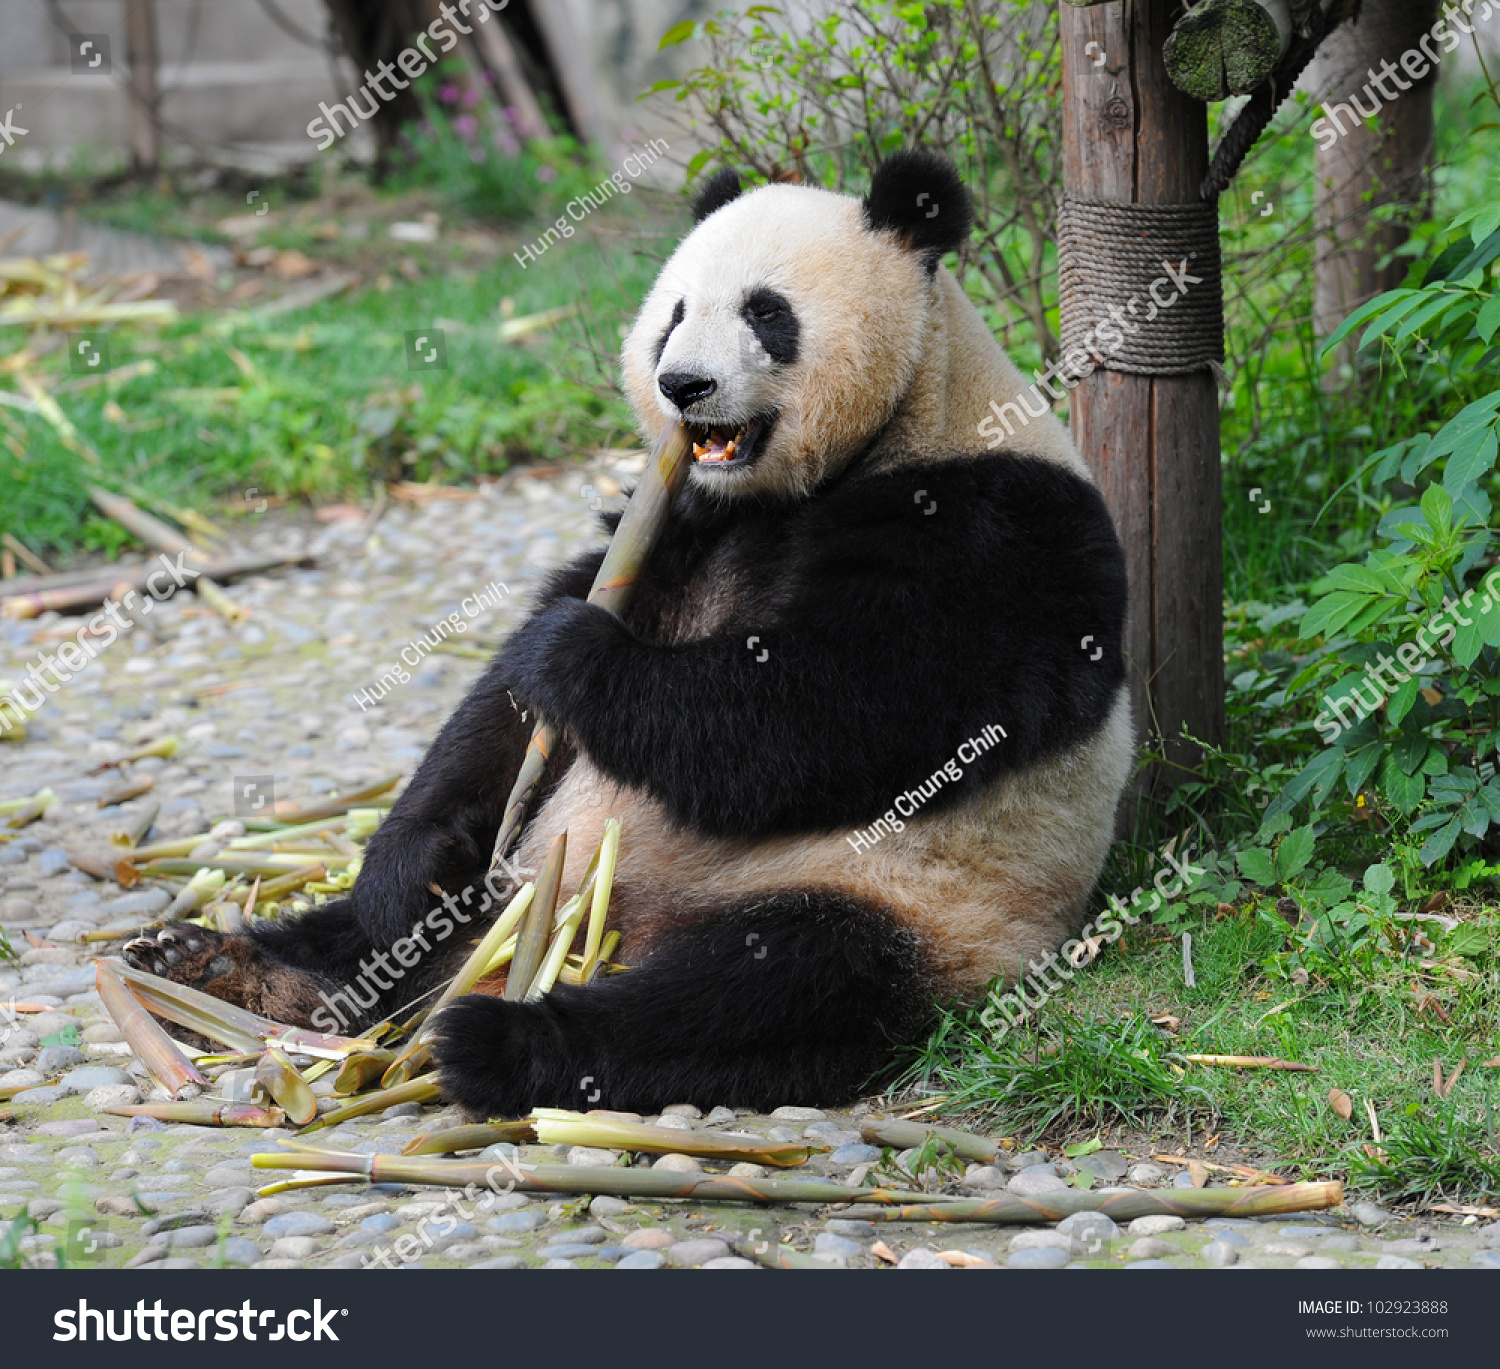 how to draw a panda eating bamboo